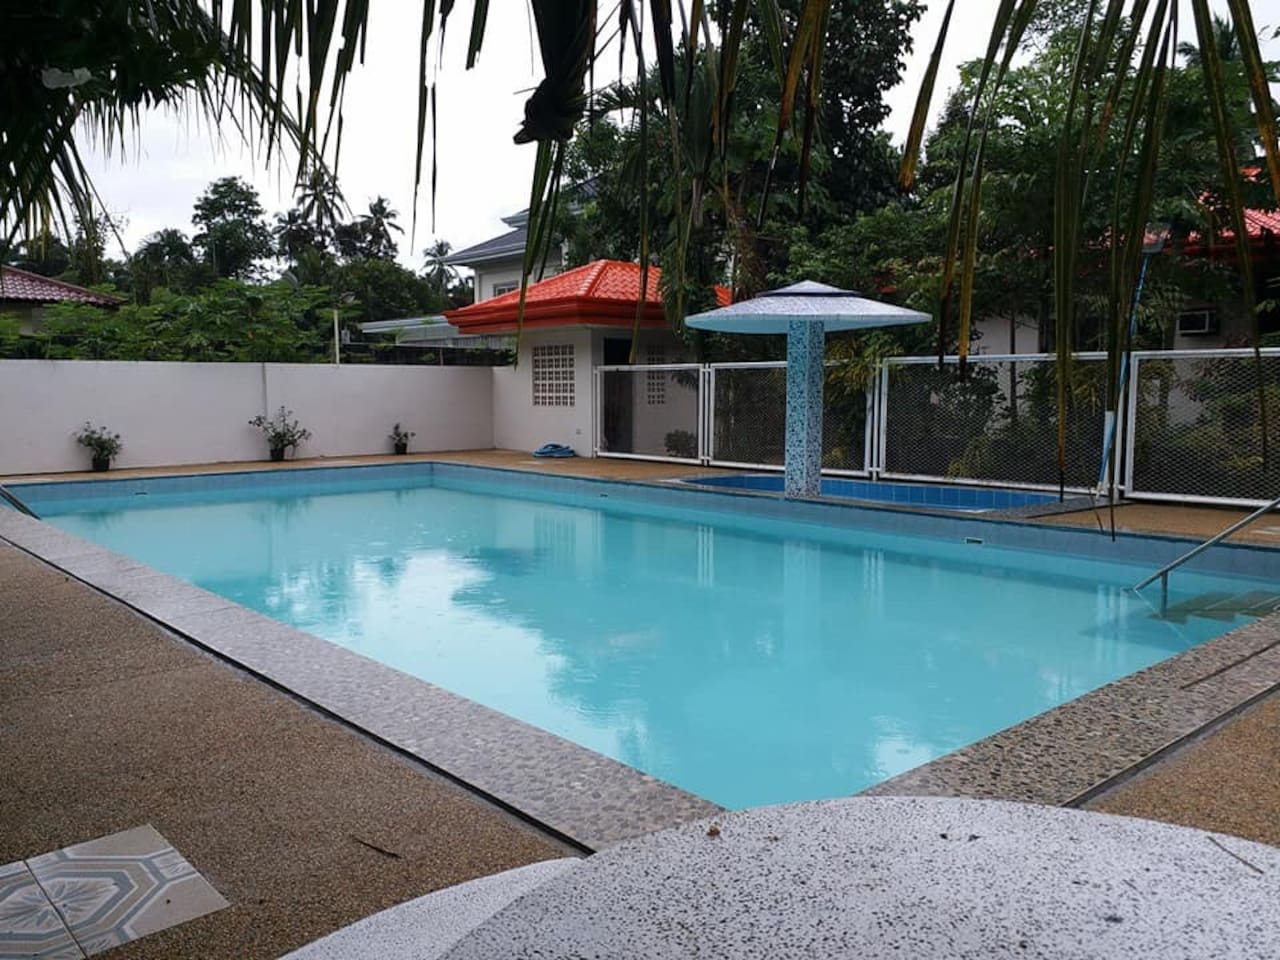 A proper use of swim wear to use the pool, guest of the renters may use the swimming pool will be charge 100 pesos per head.